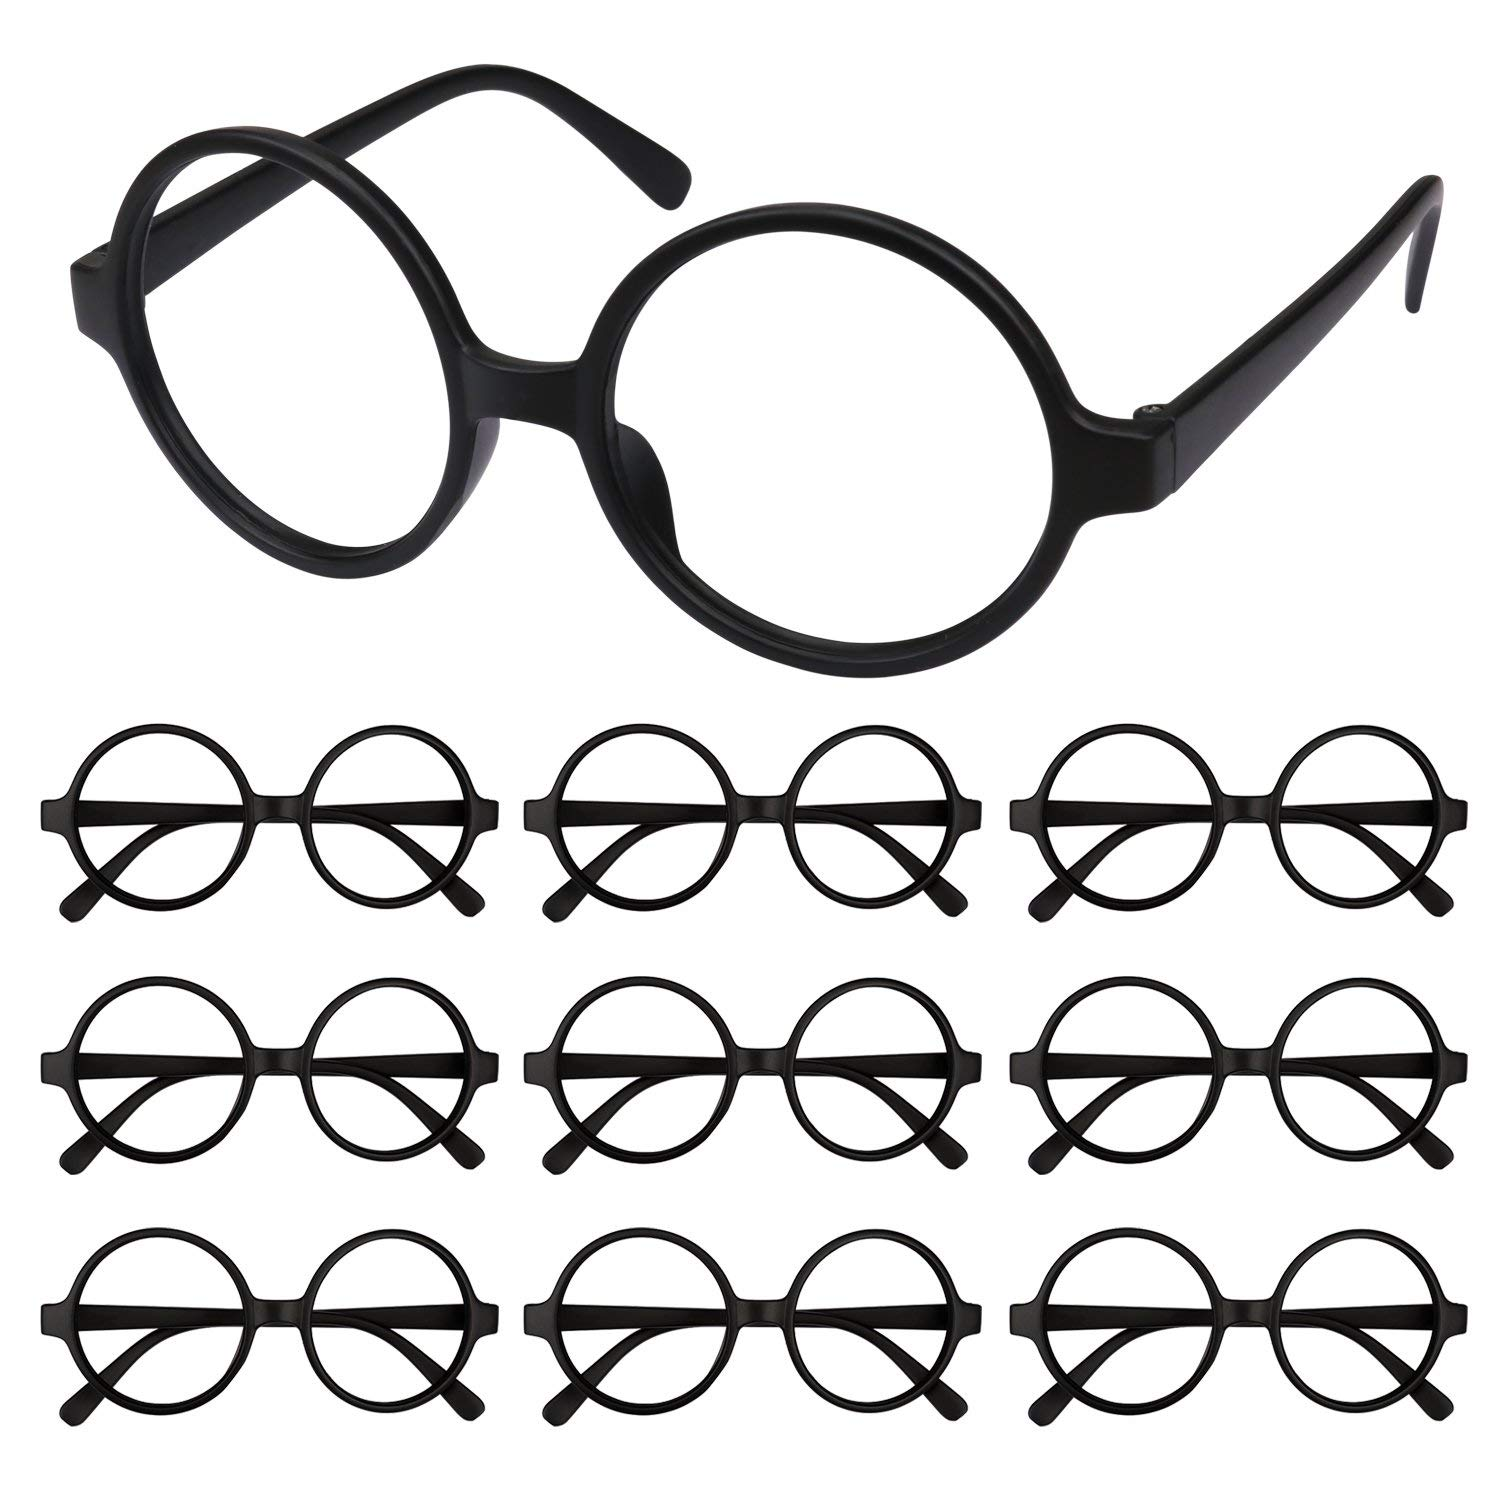 094444b0b72 Get Quotations · Hapdoo Black Kids Retro Round Glasses Frame Plastic Wizard Glasses  Frame No Lenses for Kids Costume